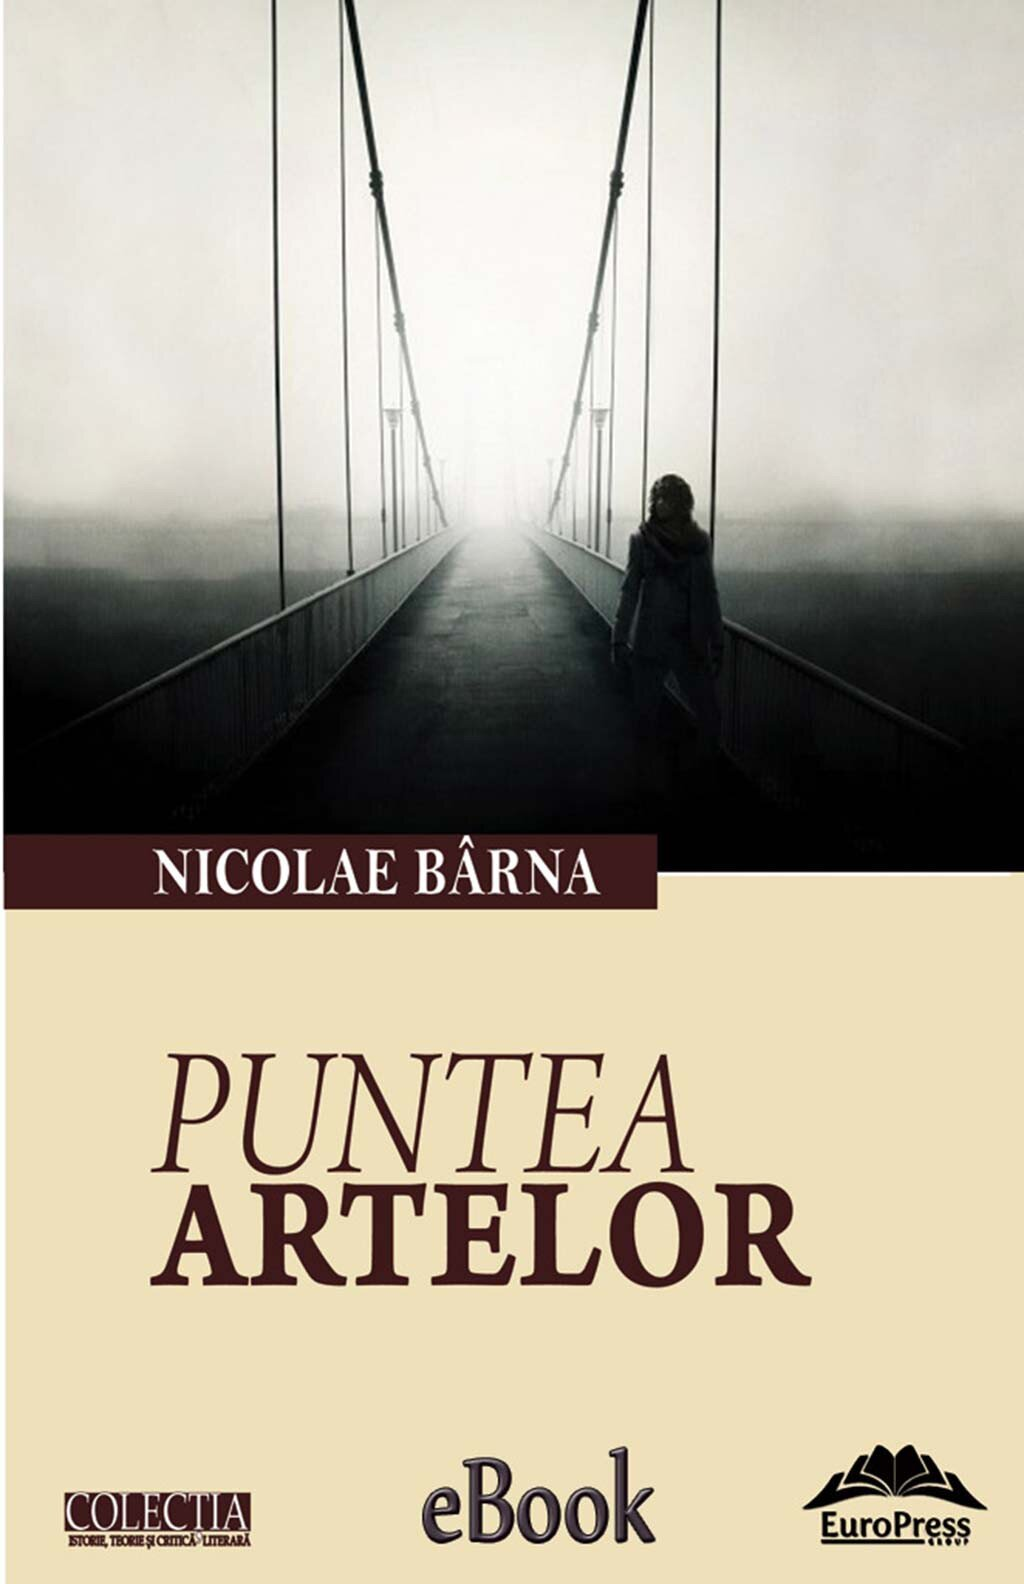 Puntea artelor PDF (Download eBook)